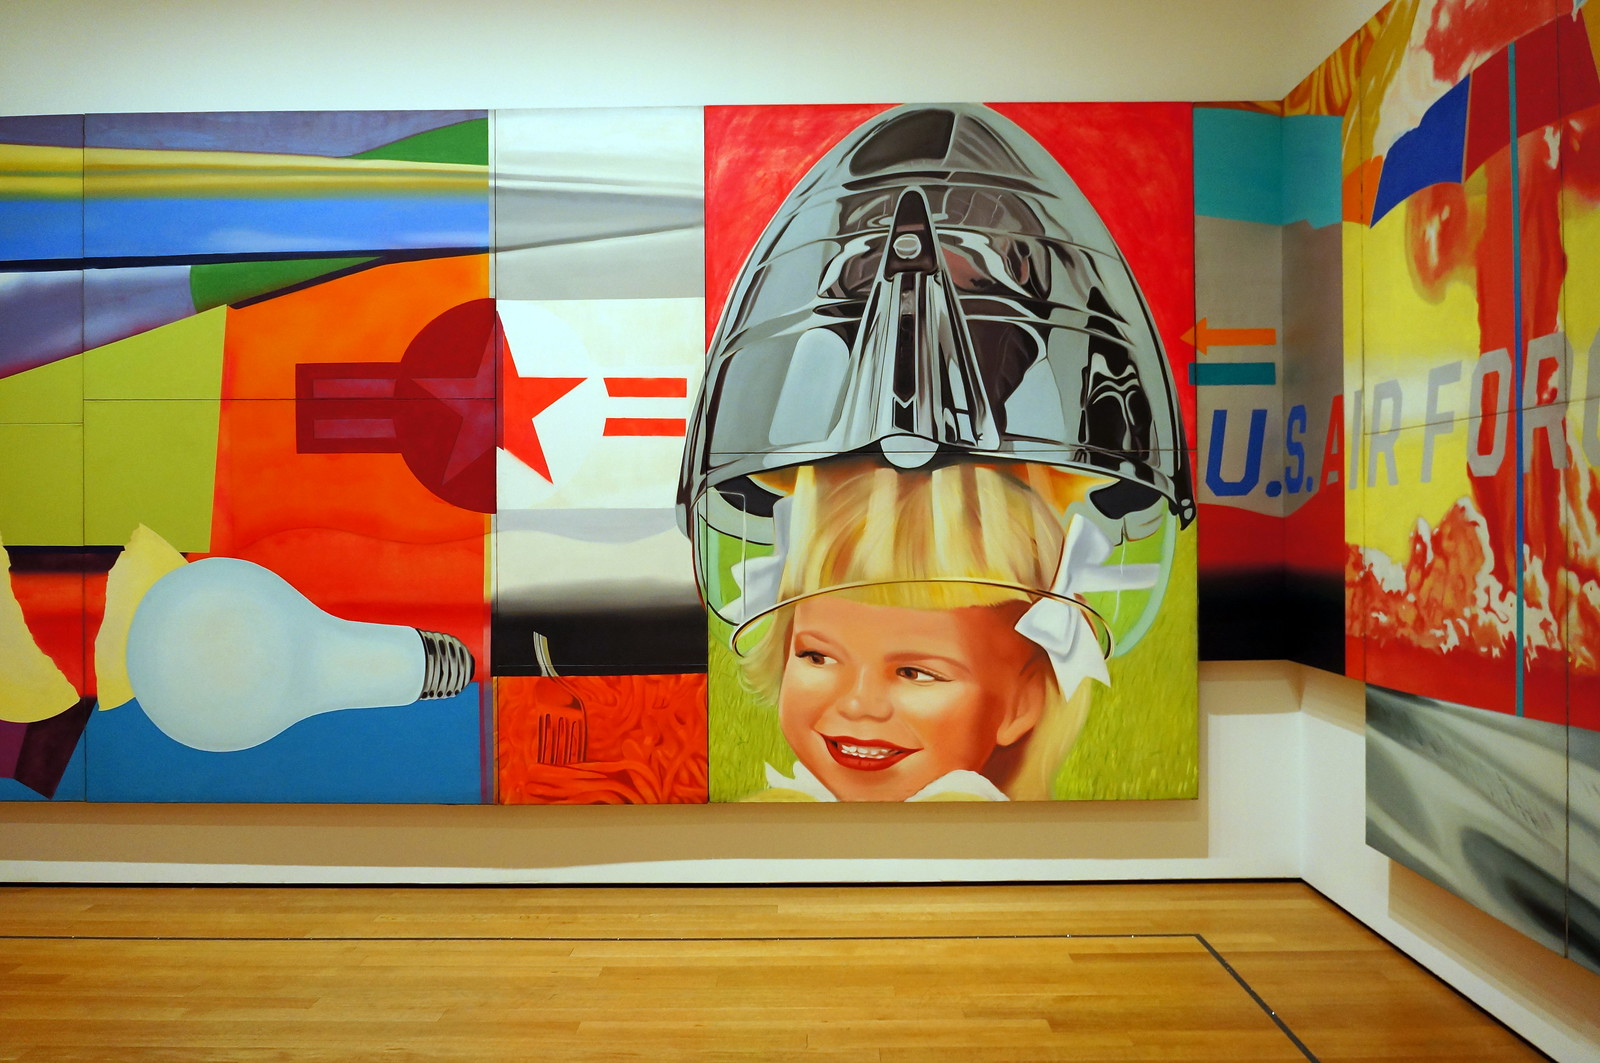 F-111, James Rosenquist (detail) | by riomaro